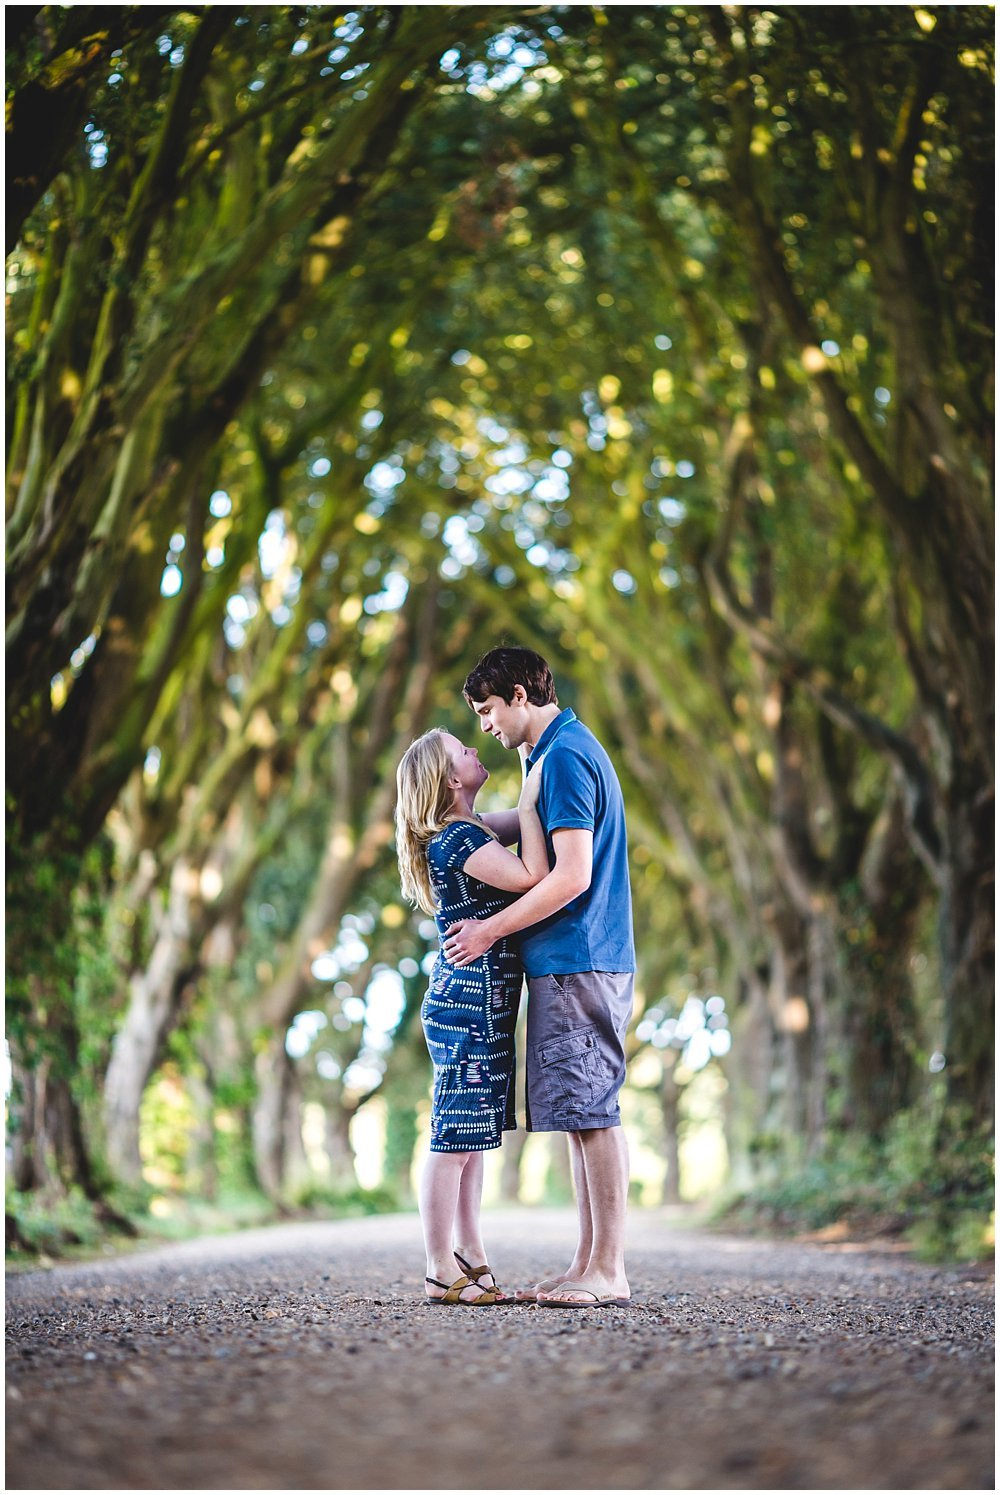 RACHEL AND TOM'S NORTH NORFOLK ENGAGEMENT SHOOT - NORFOLK WEDDING PHOTOGRAPHER